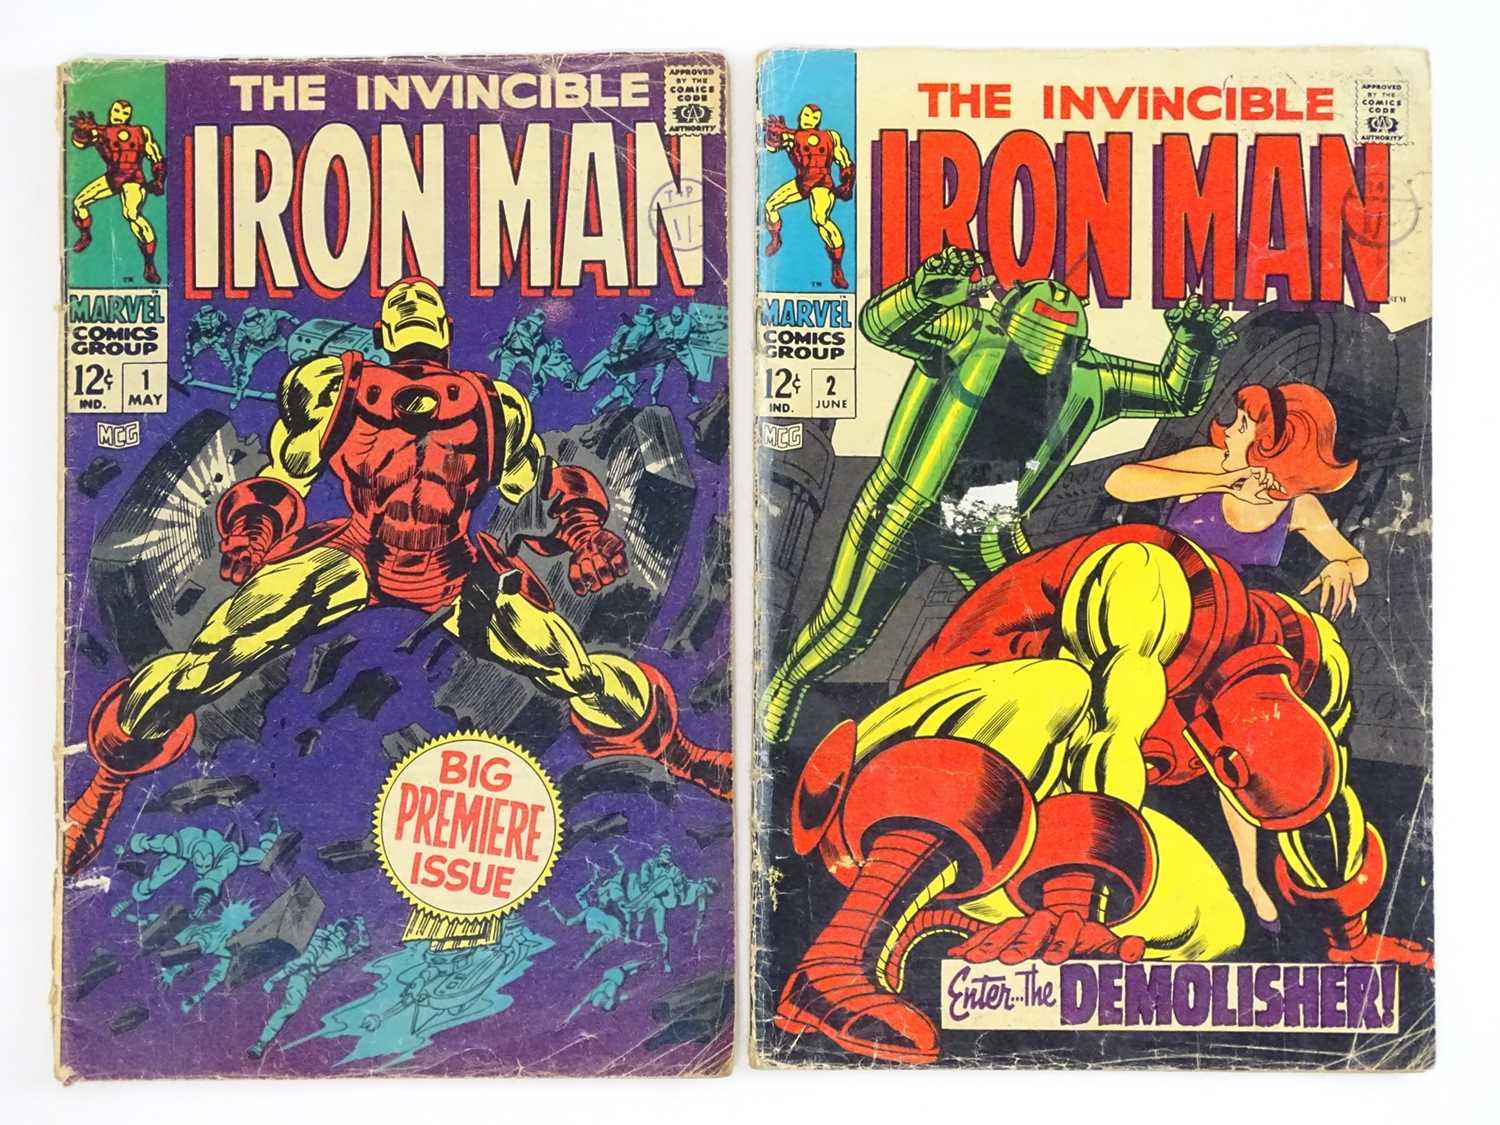 IRON MAN #1 & 2 (1968 - MARVEL - UK Cover Price) - Origin of Iron Man retold + First appearance of